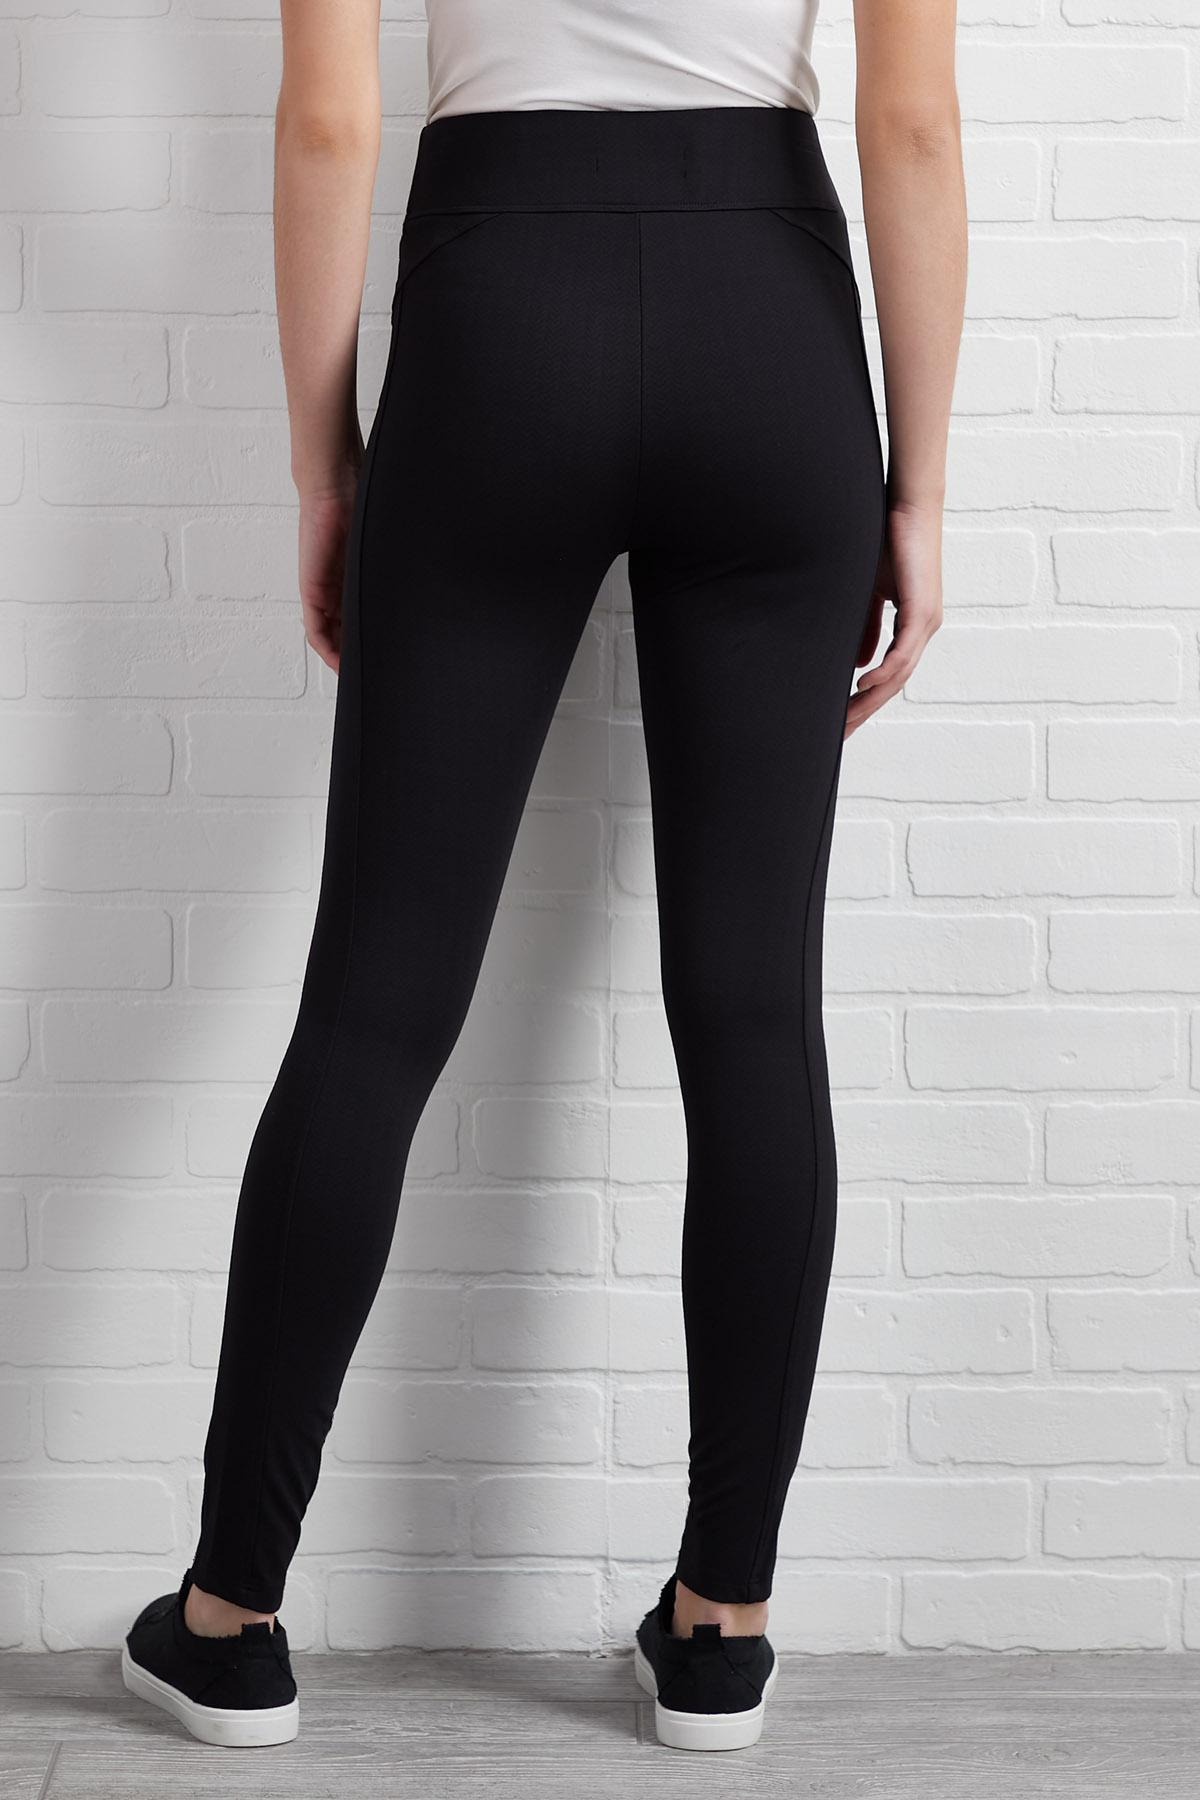 Get To The Ponte Leggings